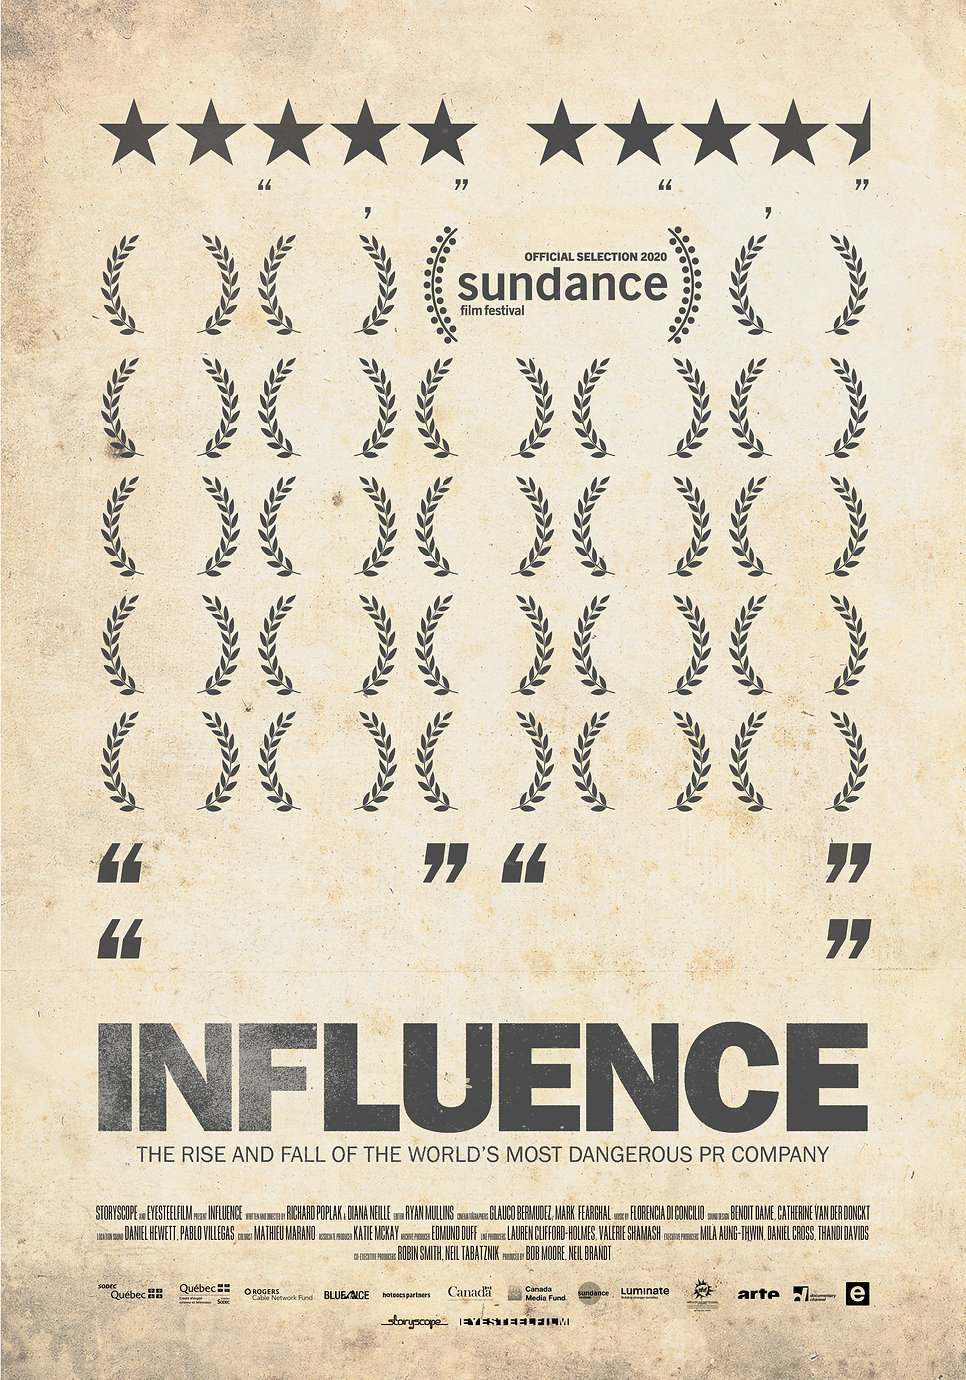 Influence_Saatchi.v3.jpg